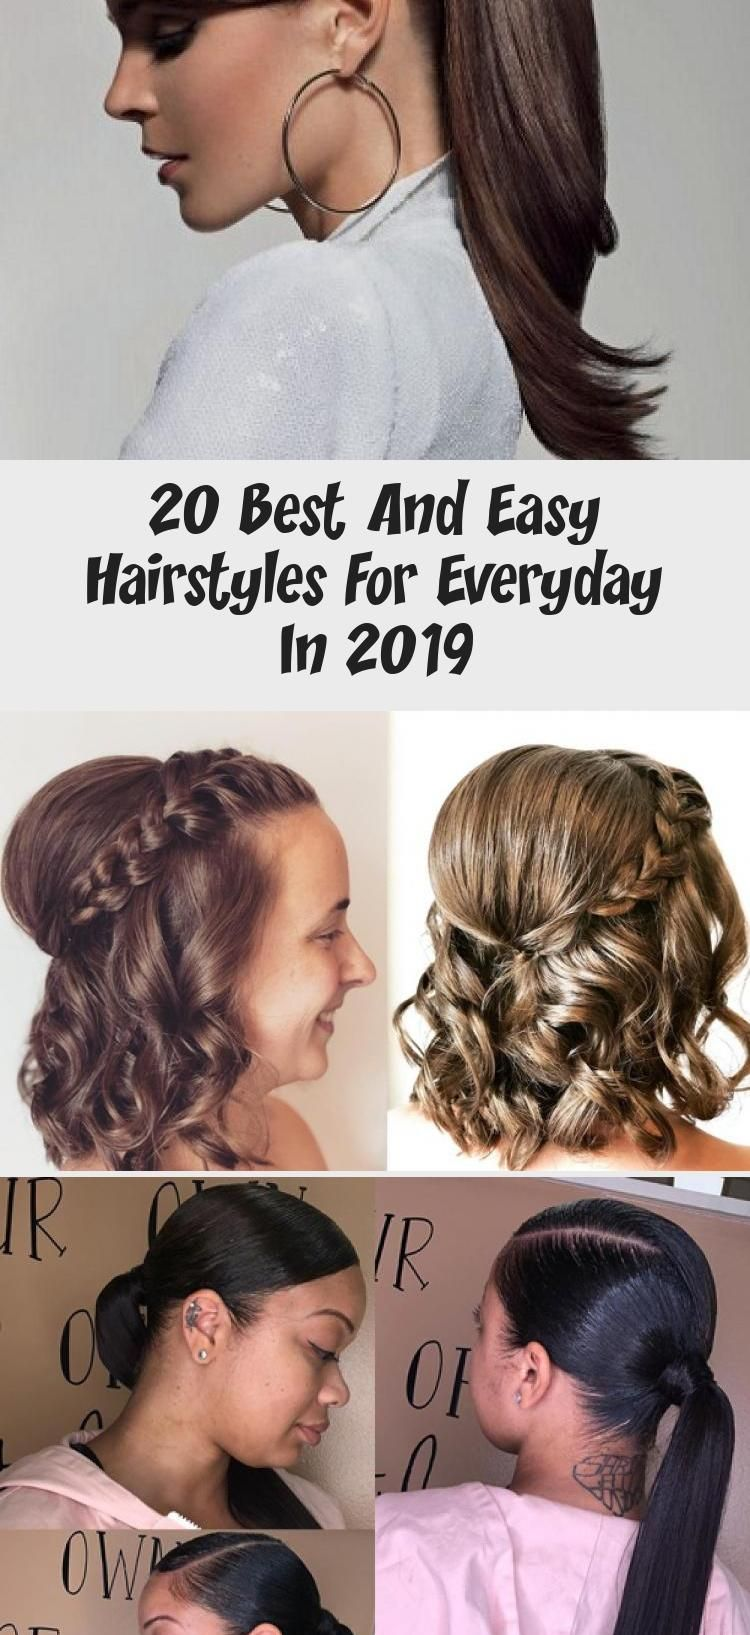 20 Best And Easy Hairstyles For Everyday In 2019 Easy Everyday Hairstyles Everyday Hairstyles Hair Styles